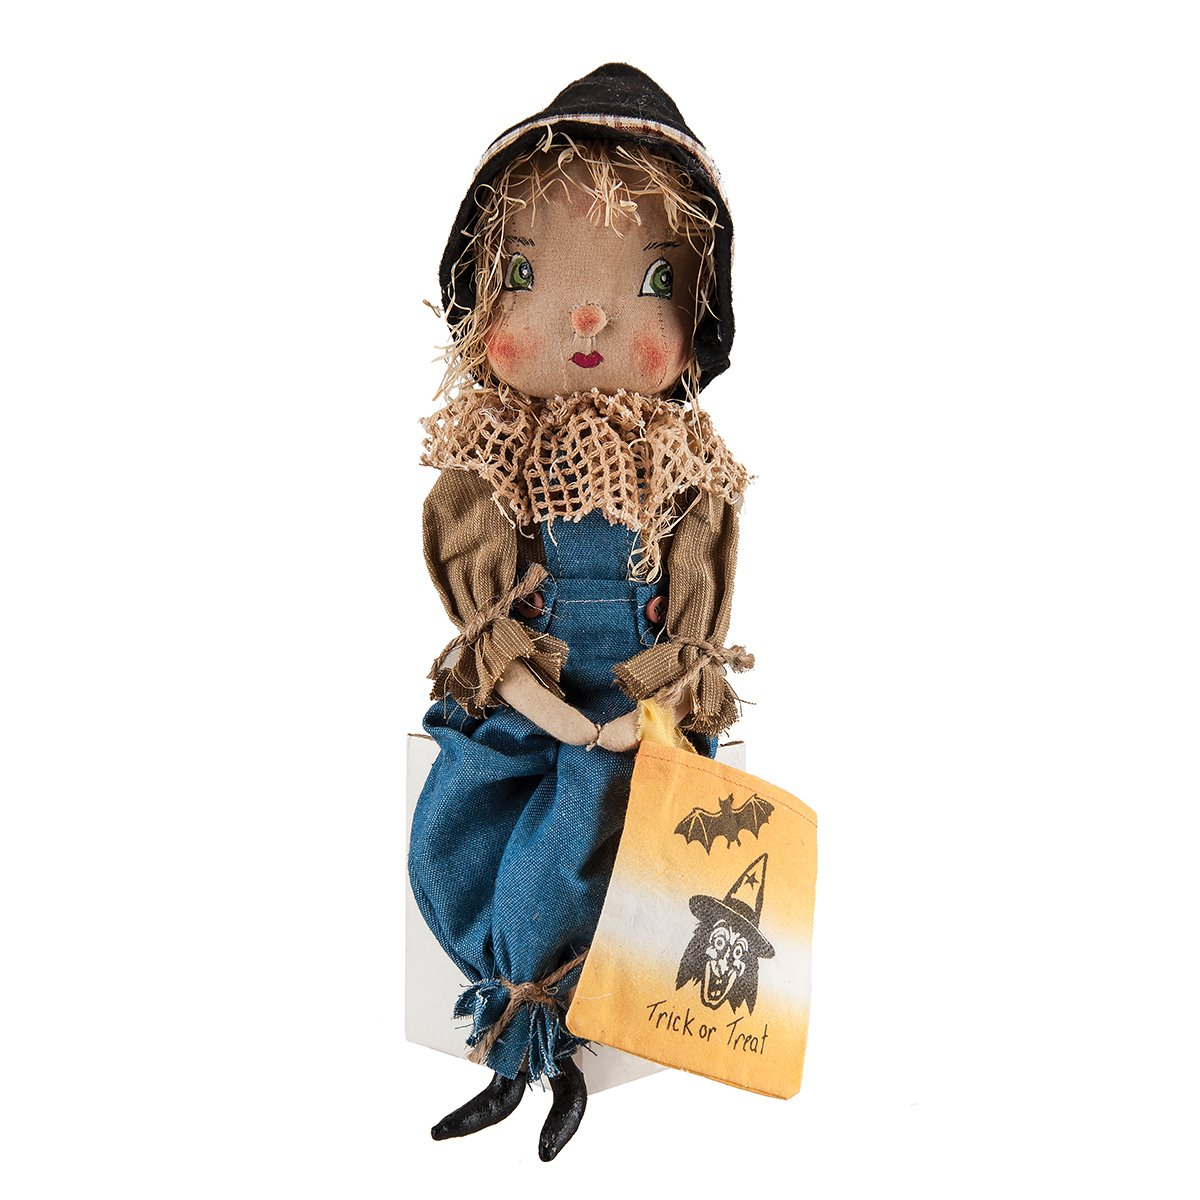 Home Decor Willis Scarecrow Boy Fabric Figurine with Hand-Painted Face